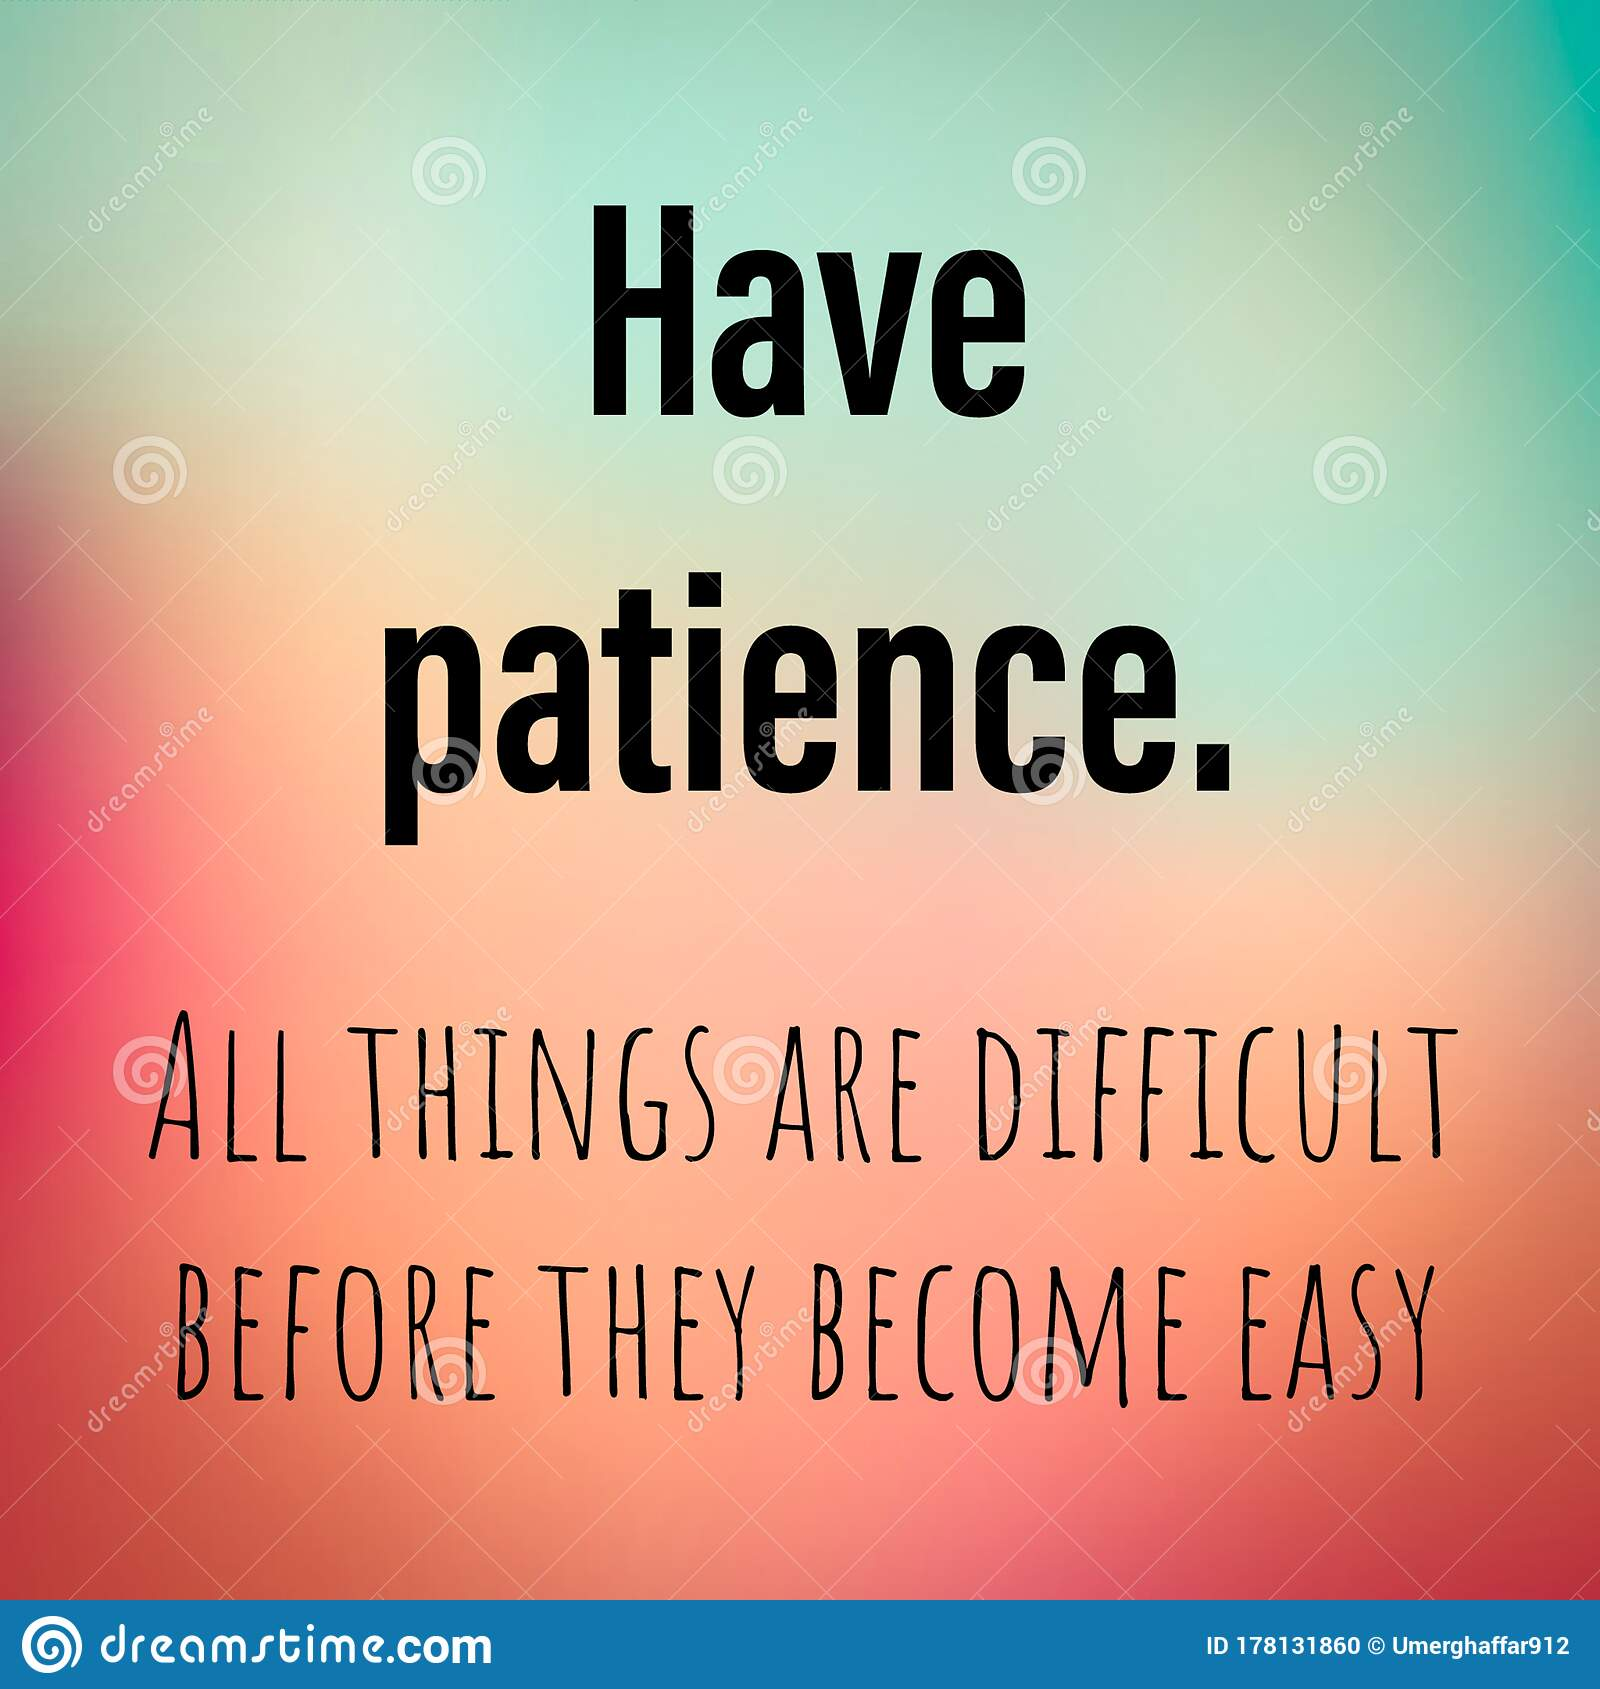 Motivational Quote About Patience In Life Stock Illustration Illustration Of Patience Facebook 178131860